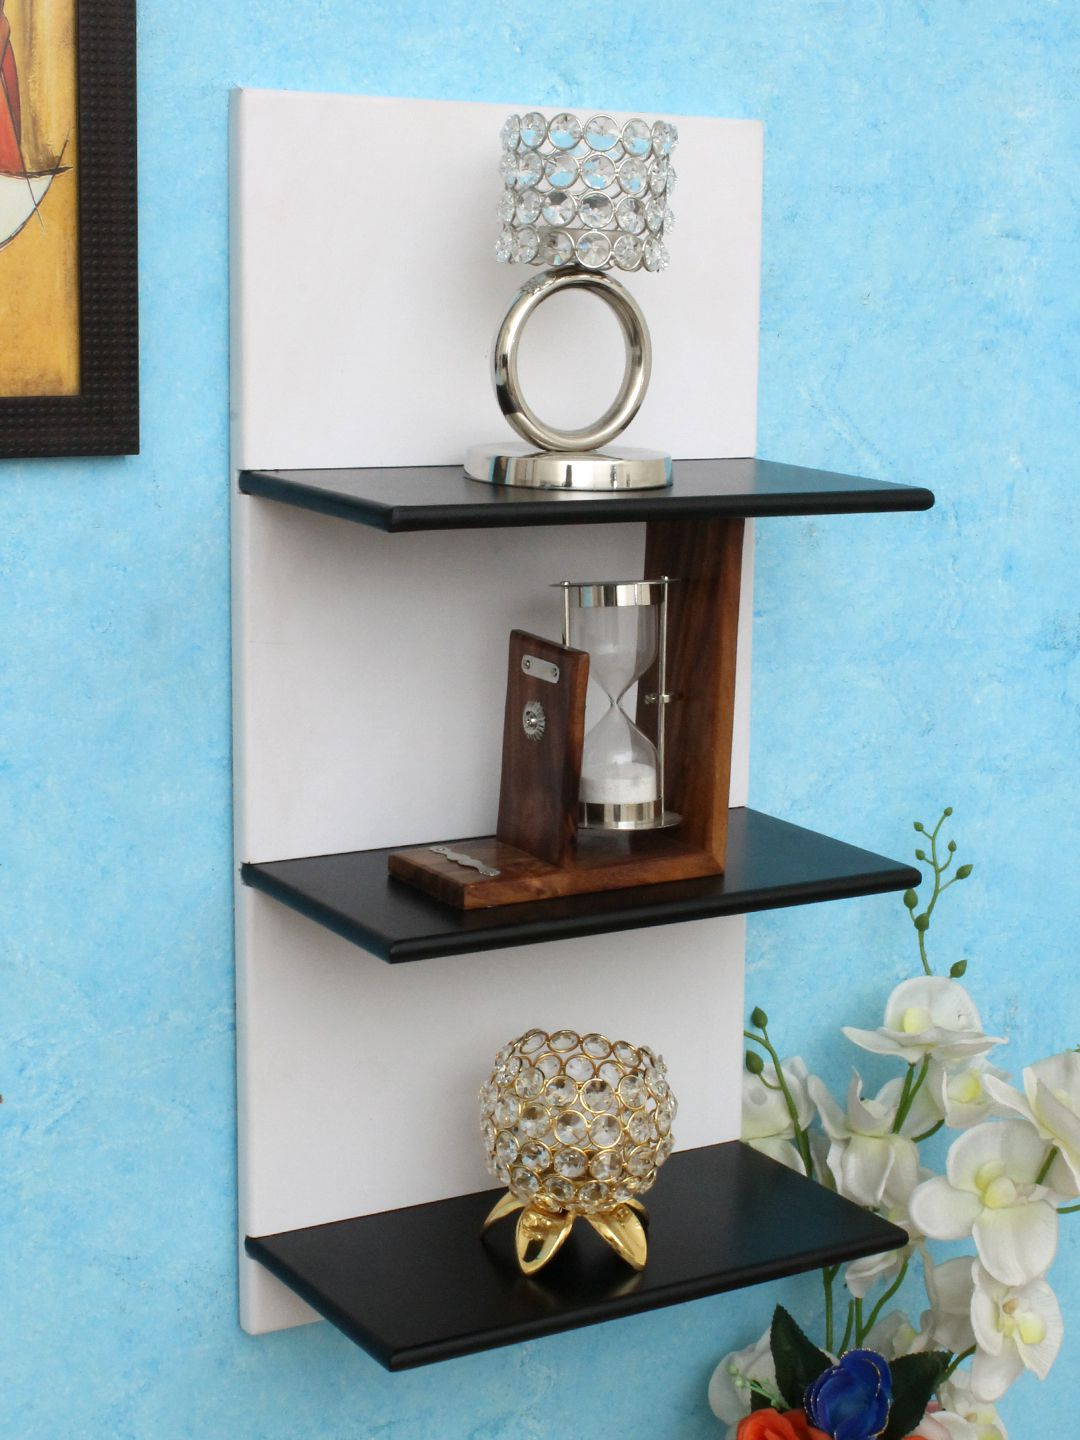 Home Sparkle MDF 3 Tier Wall Shelf For Wall Décor -Suitable For Living Room/Bed Room (Designed By Craftsman)